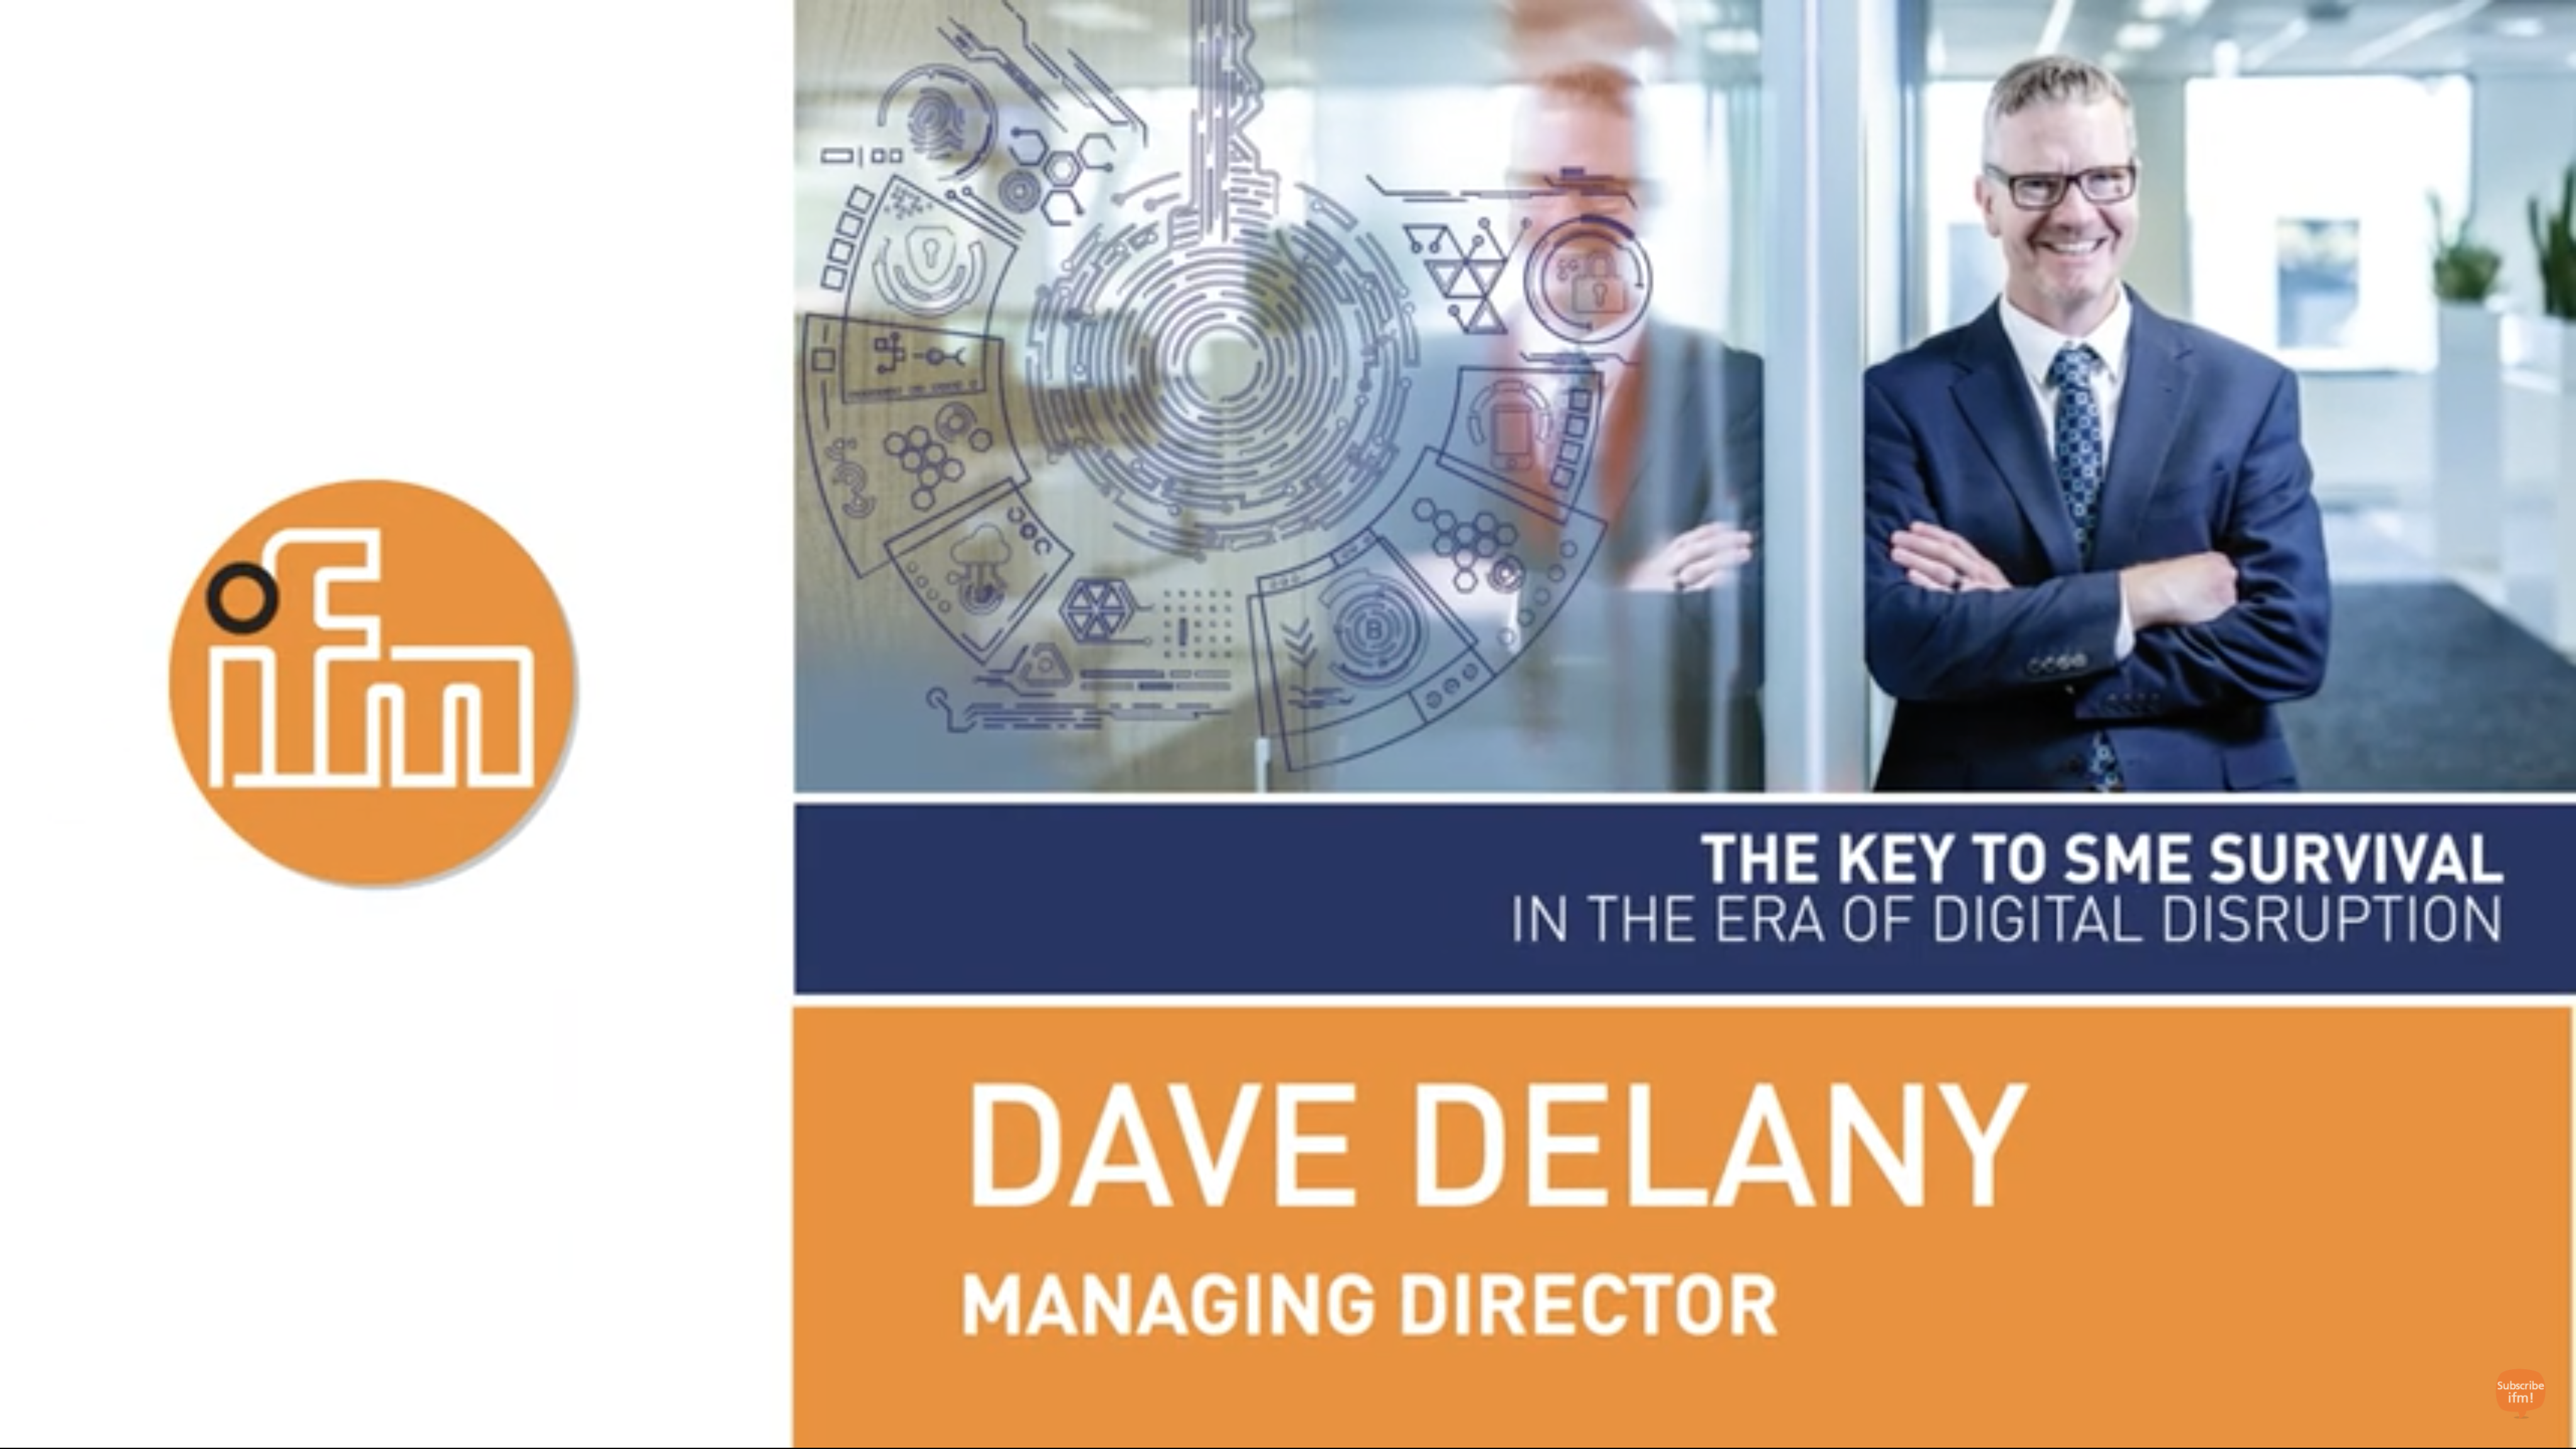 Webinar: The key to SME survival in the age of digital disruption